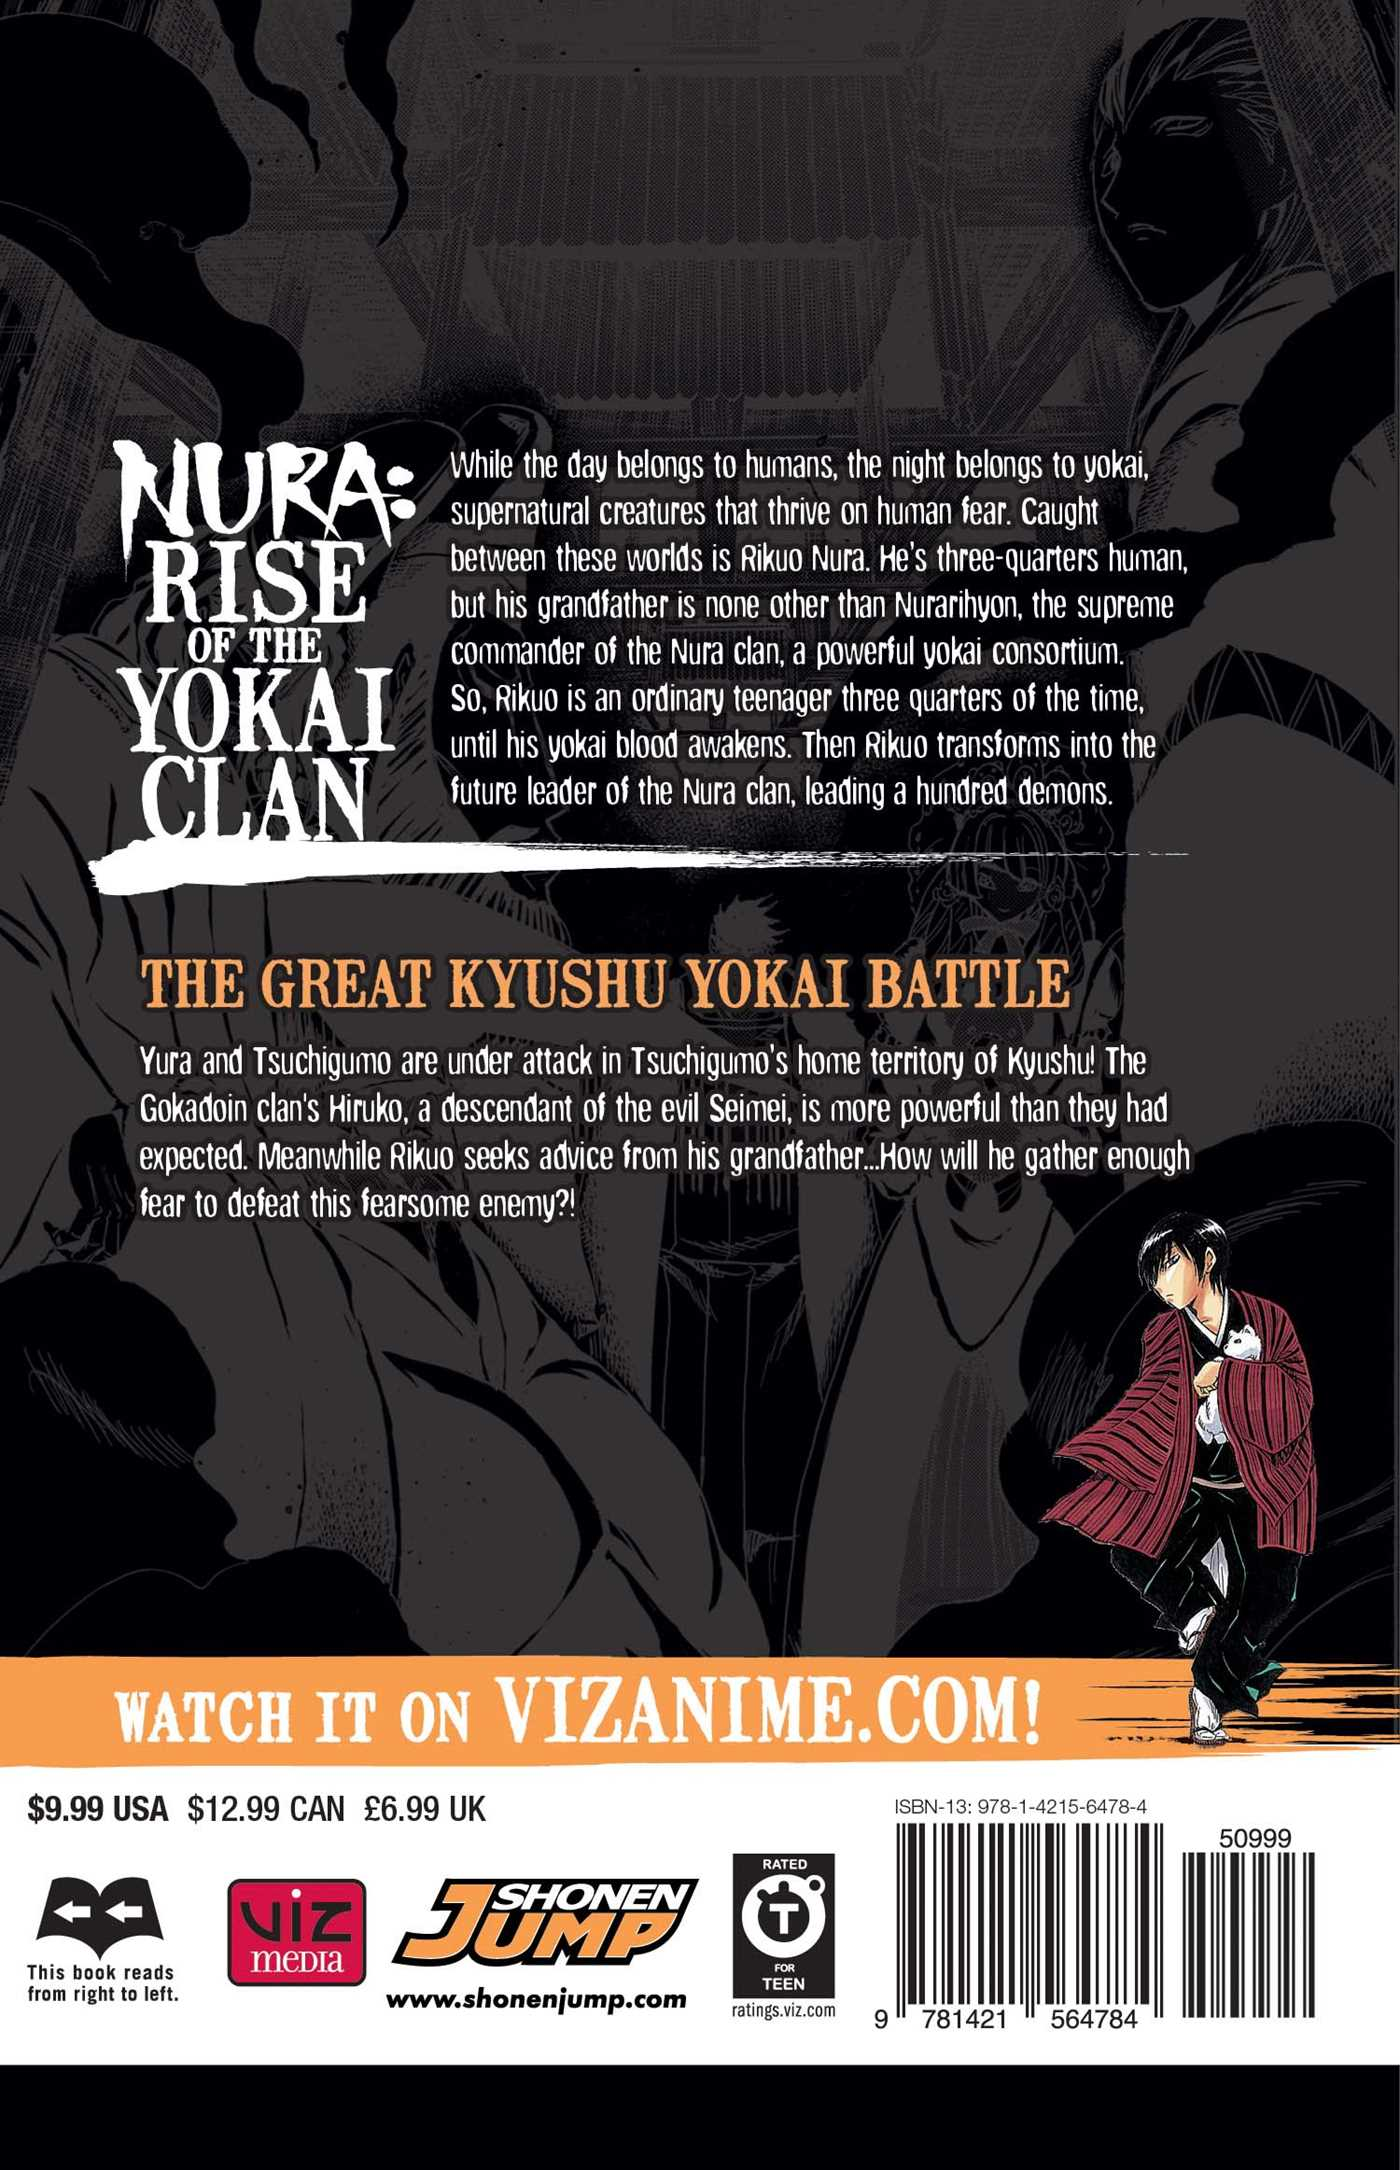 Nura rise of the yokai clan vol 23 9781421564784 hr back